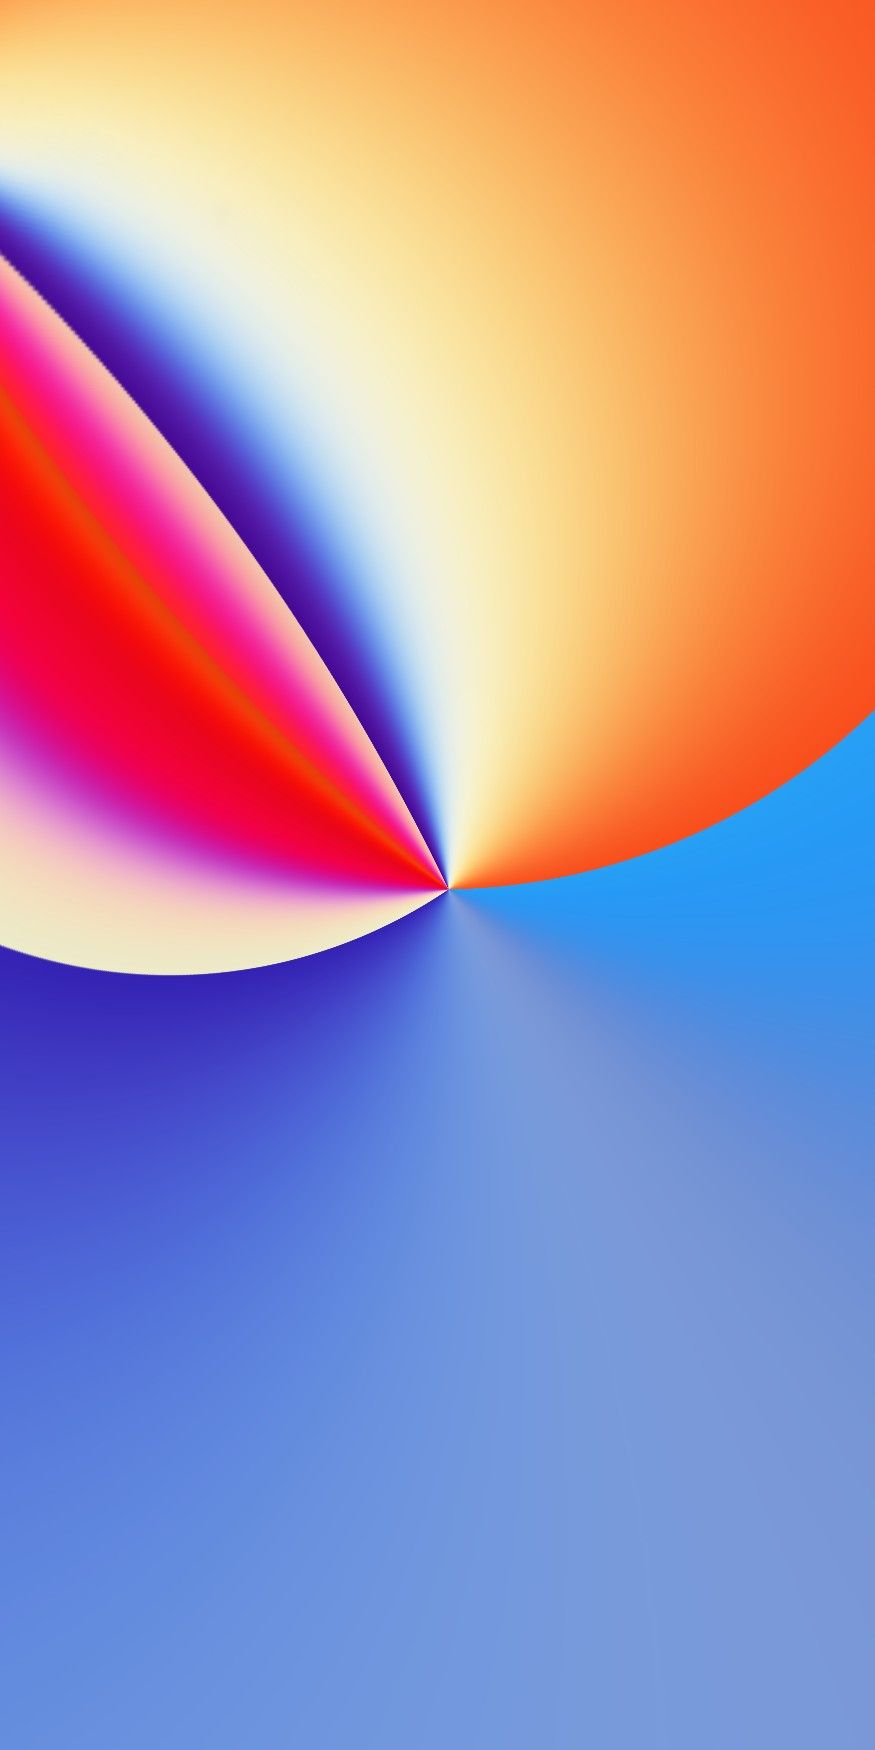 Pin By Iyan Sofyan On Abstract Amoled Liquid Gradient With